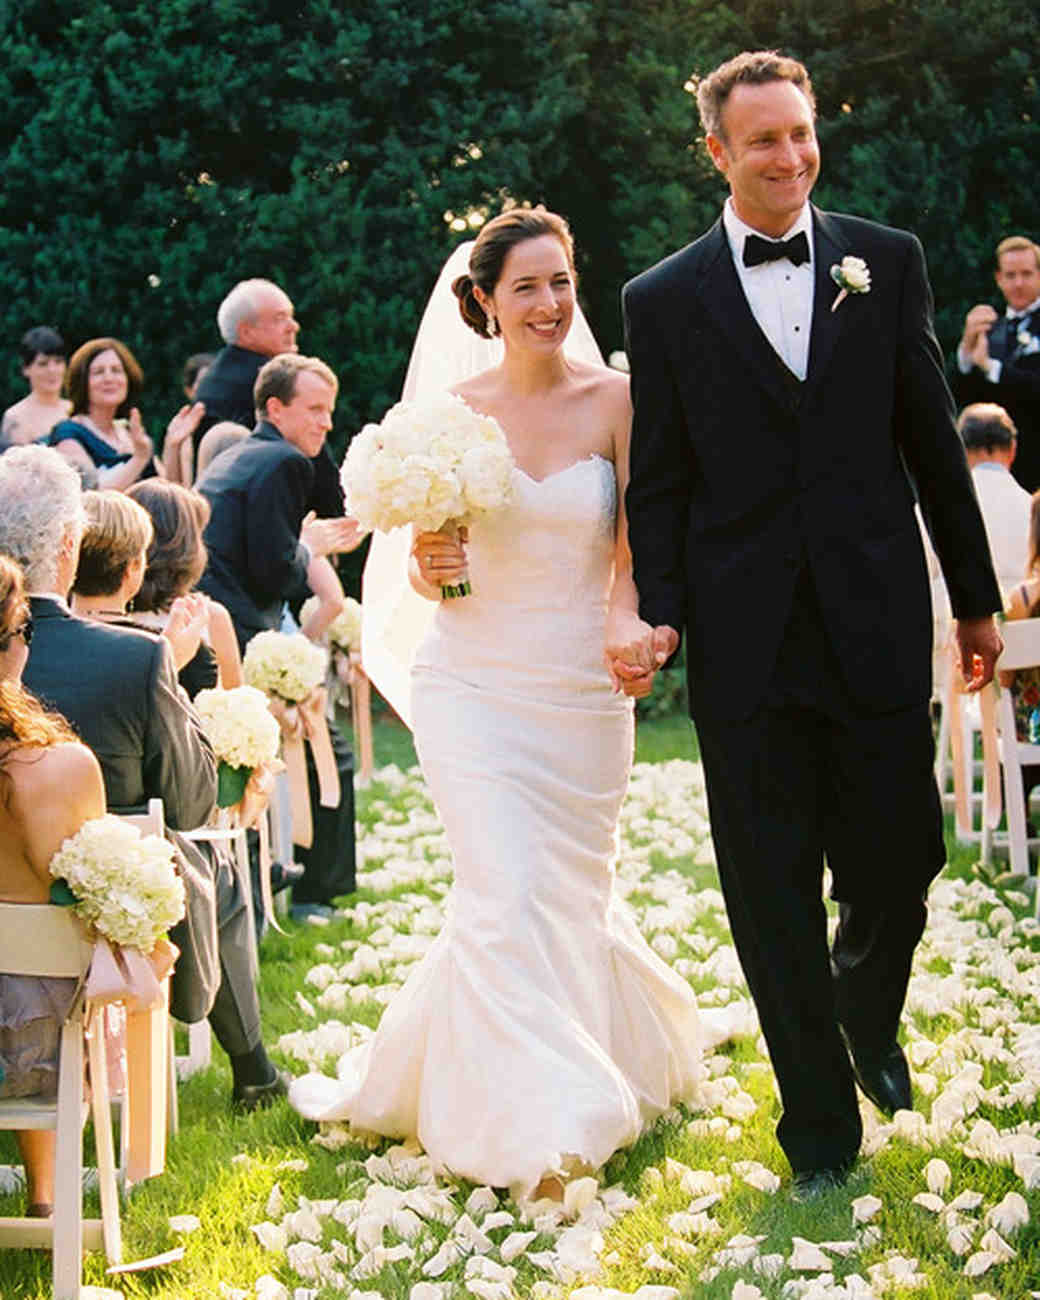 A Formal Tent Wedding in Virginia